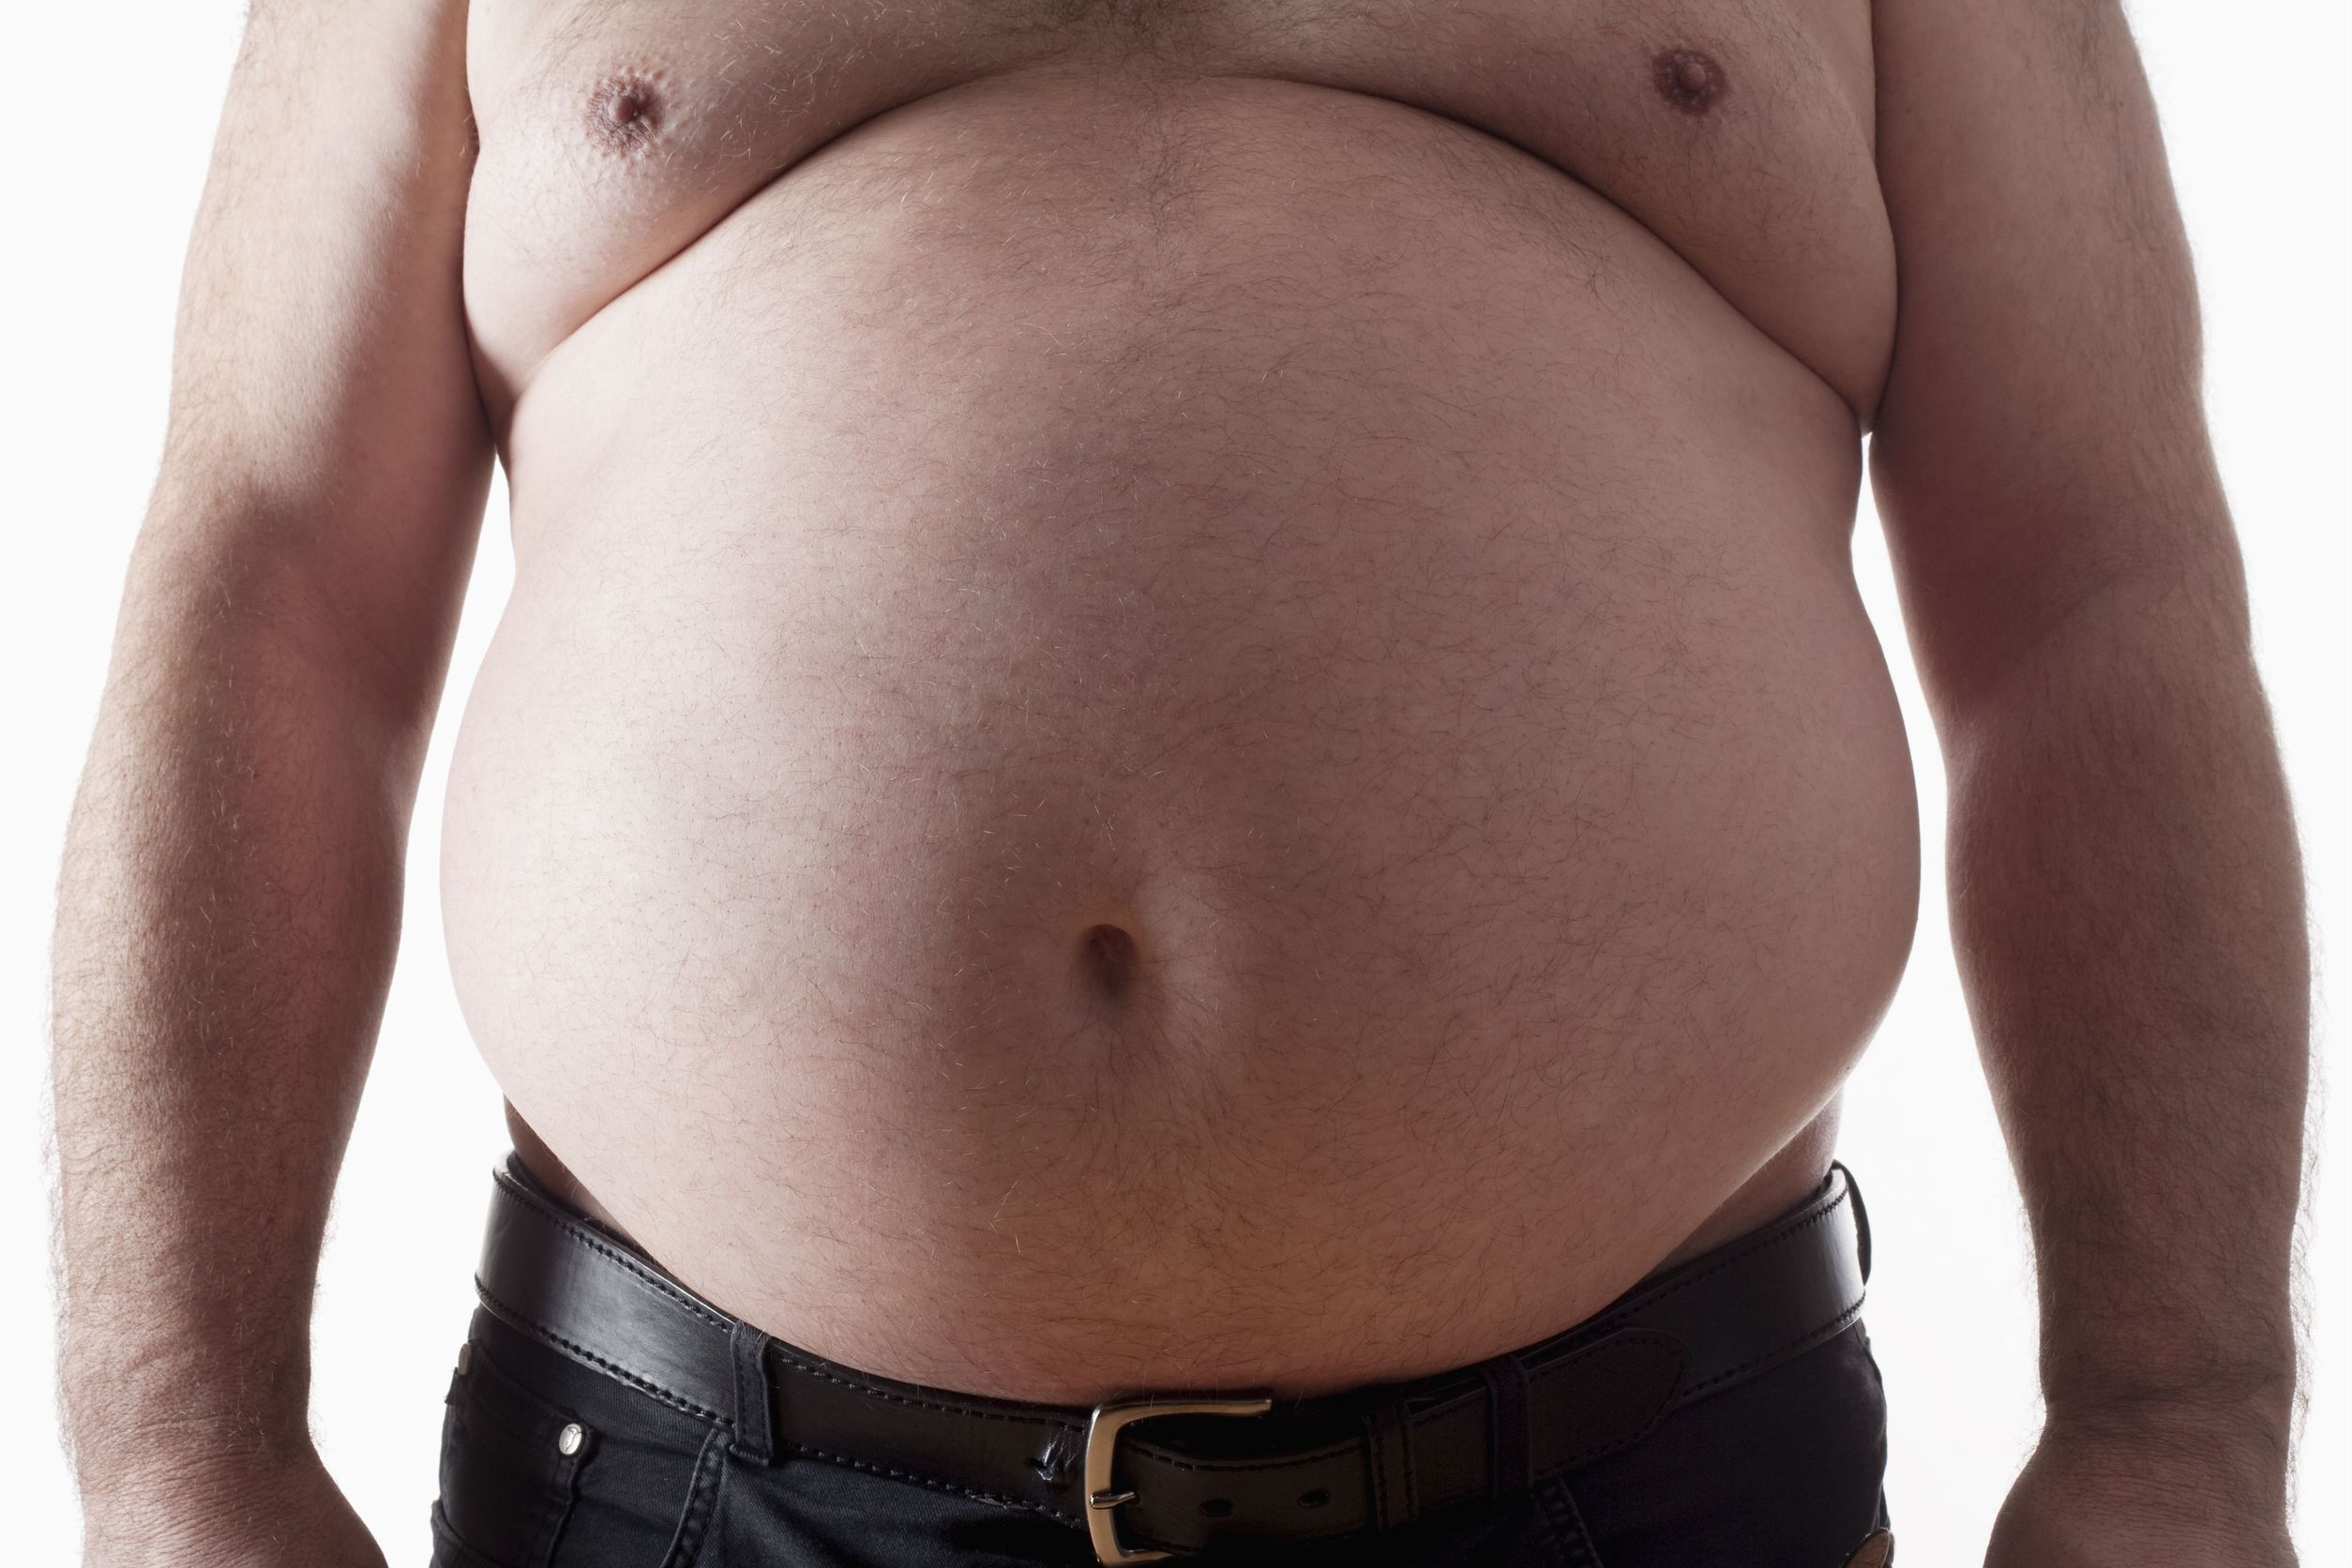 big-belly-of-a-fat-man-isolated-on-white-